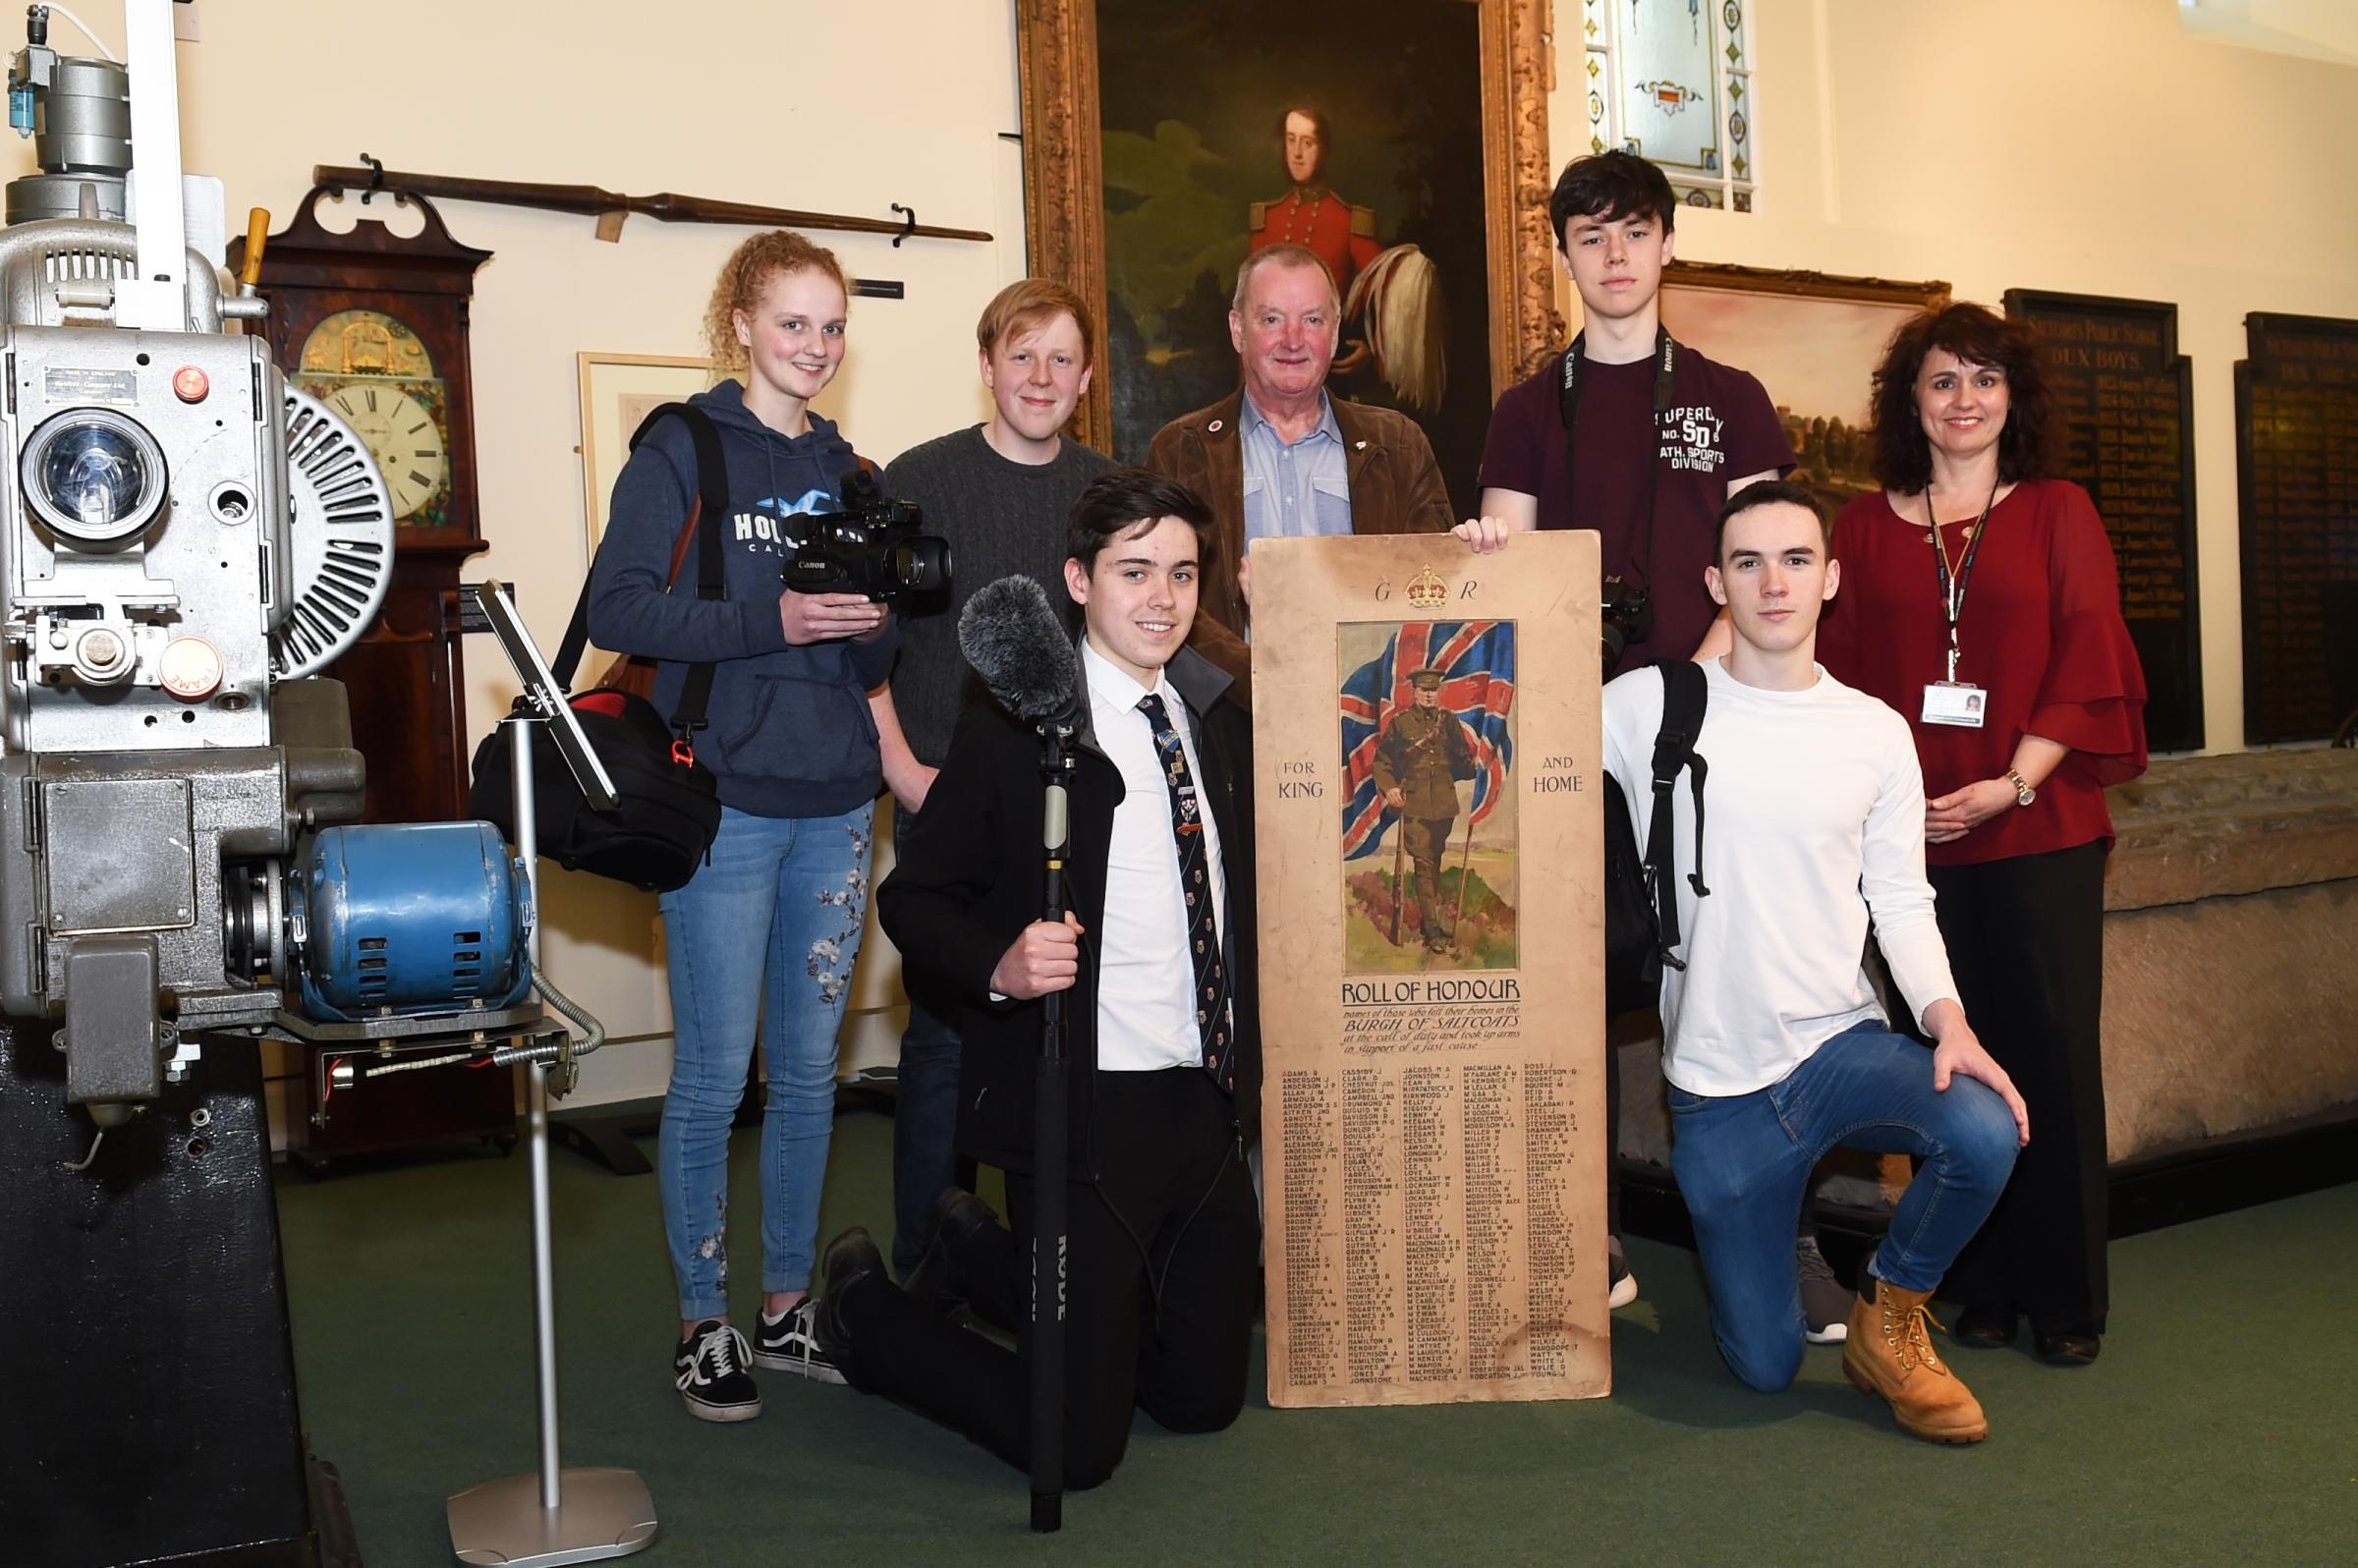 WW1 display A WW1 project aimed at young people has received £10,000 in funding.